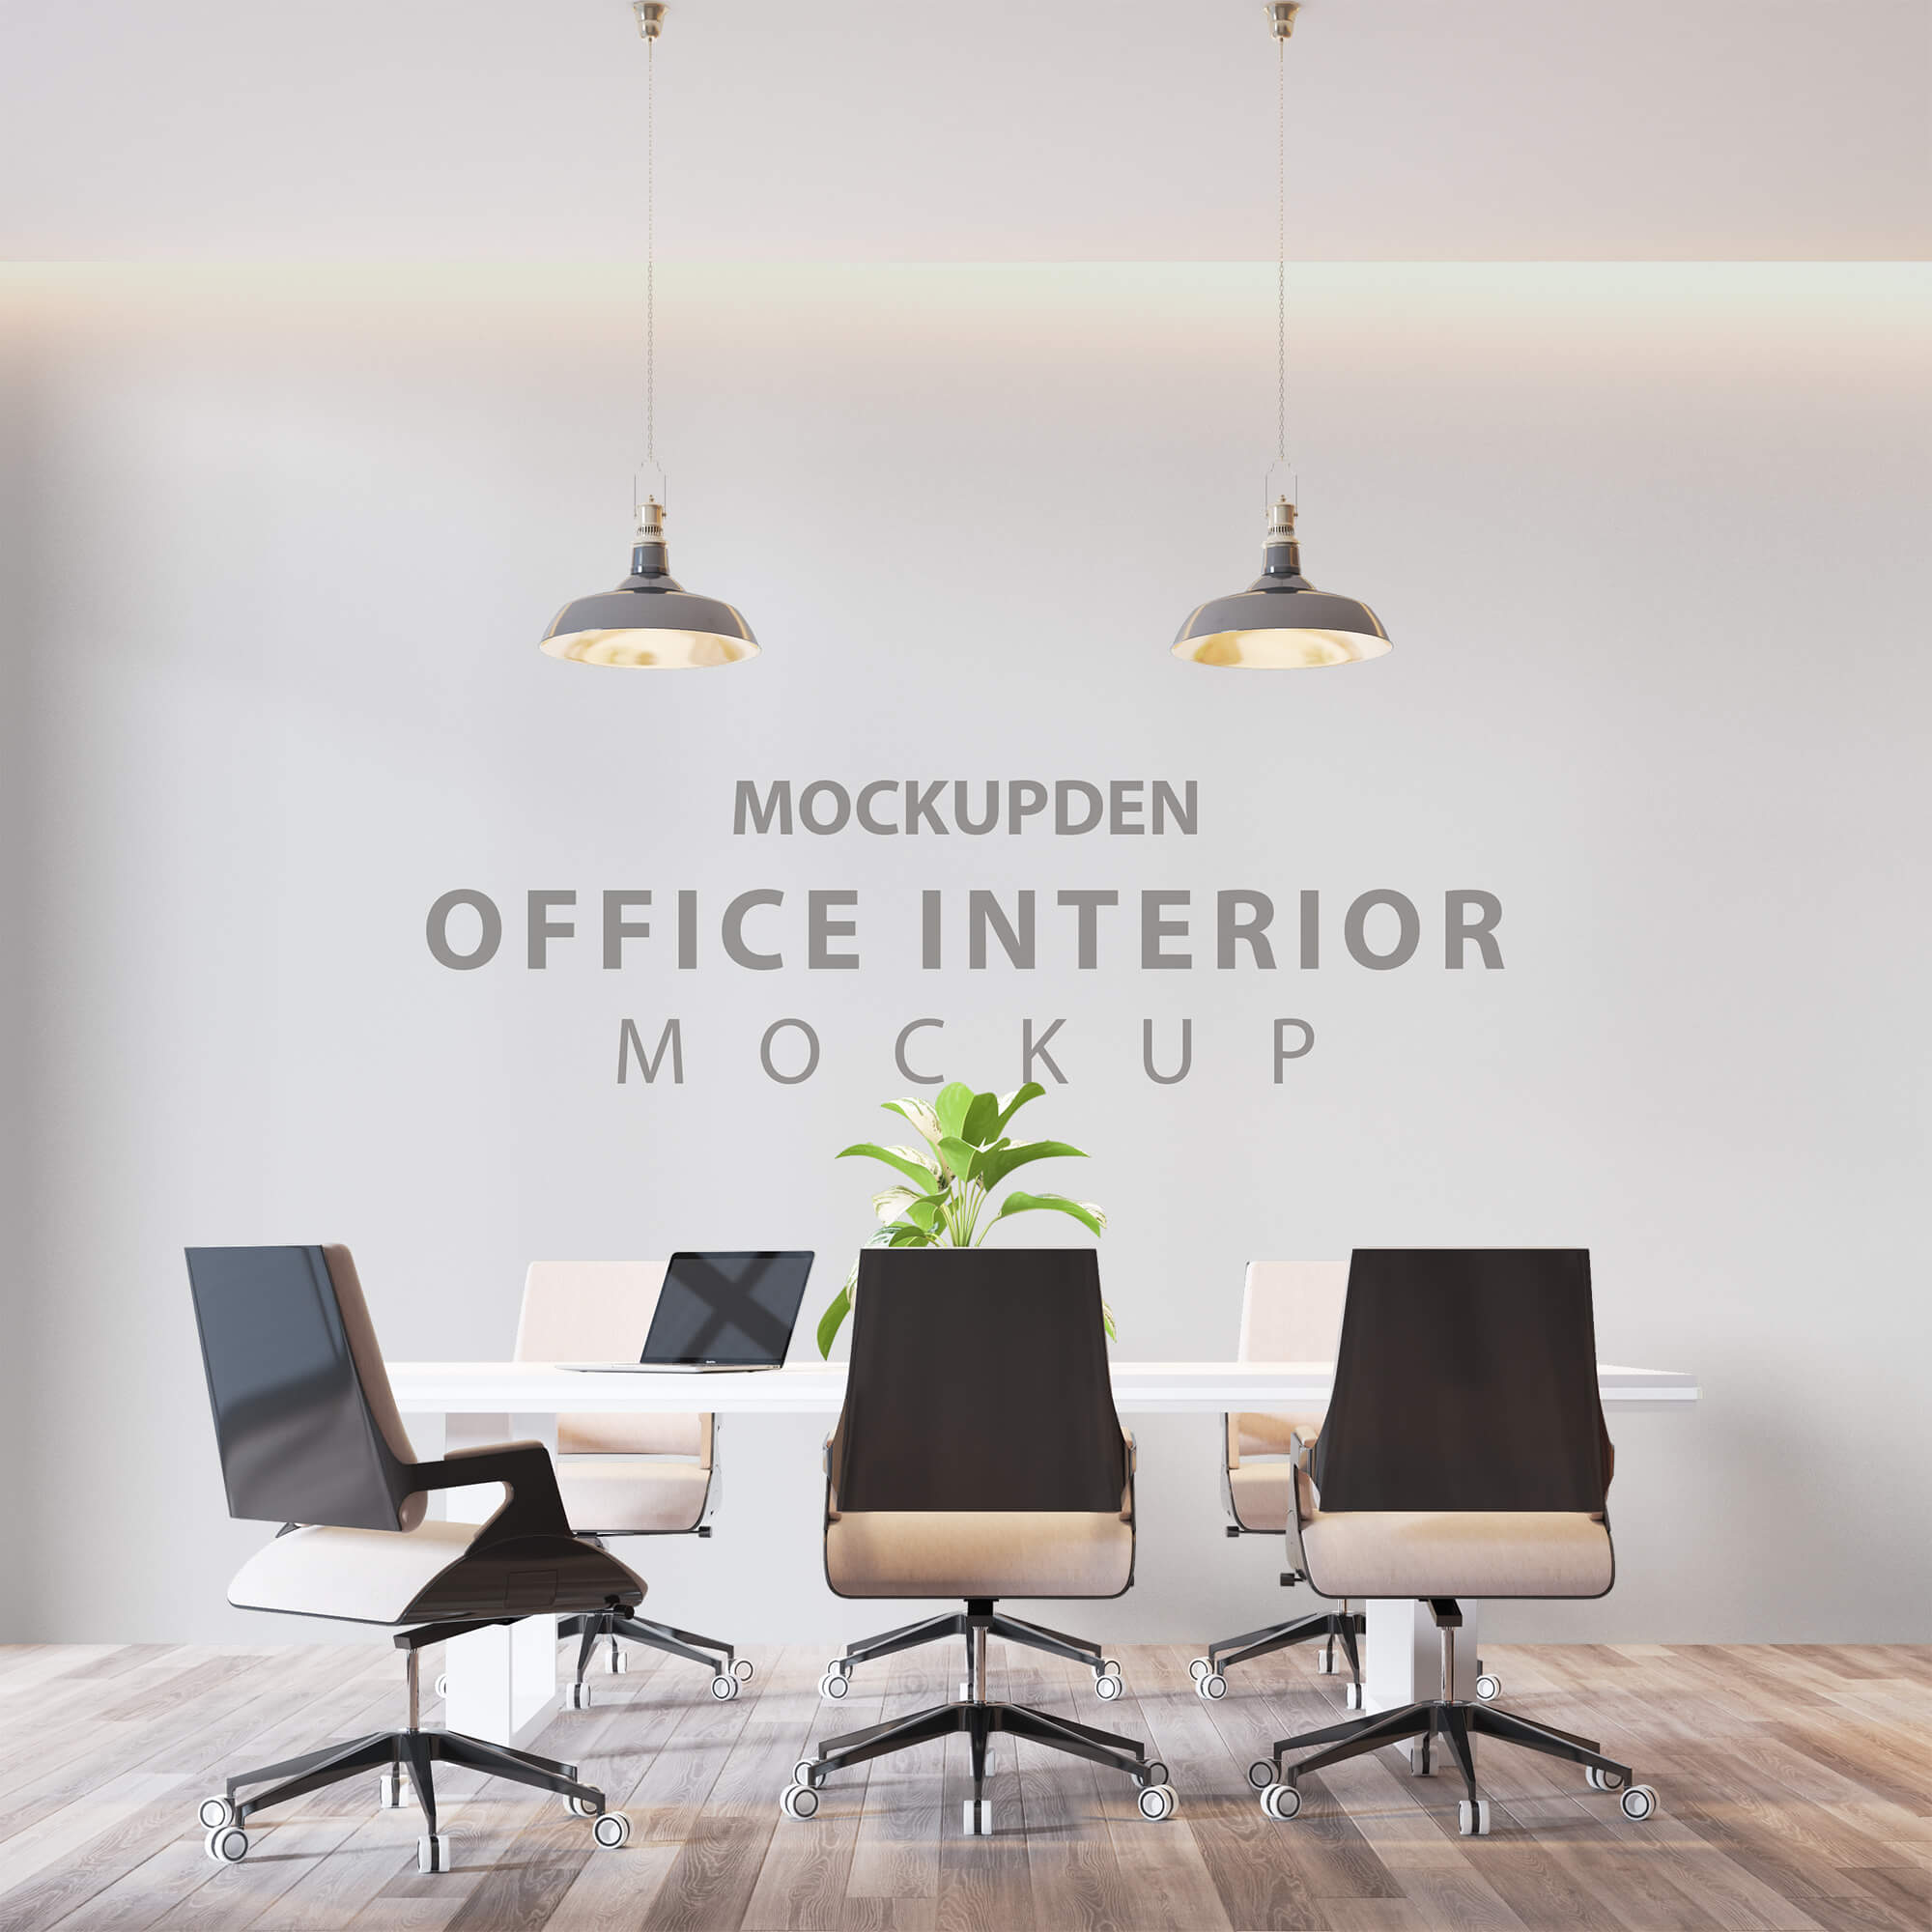 Free Office Interior Mockup PSD Template (1)